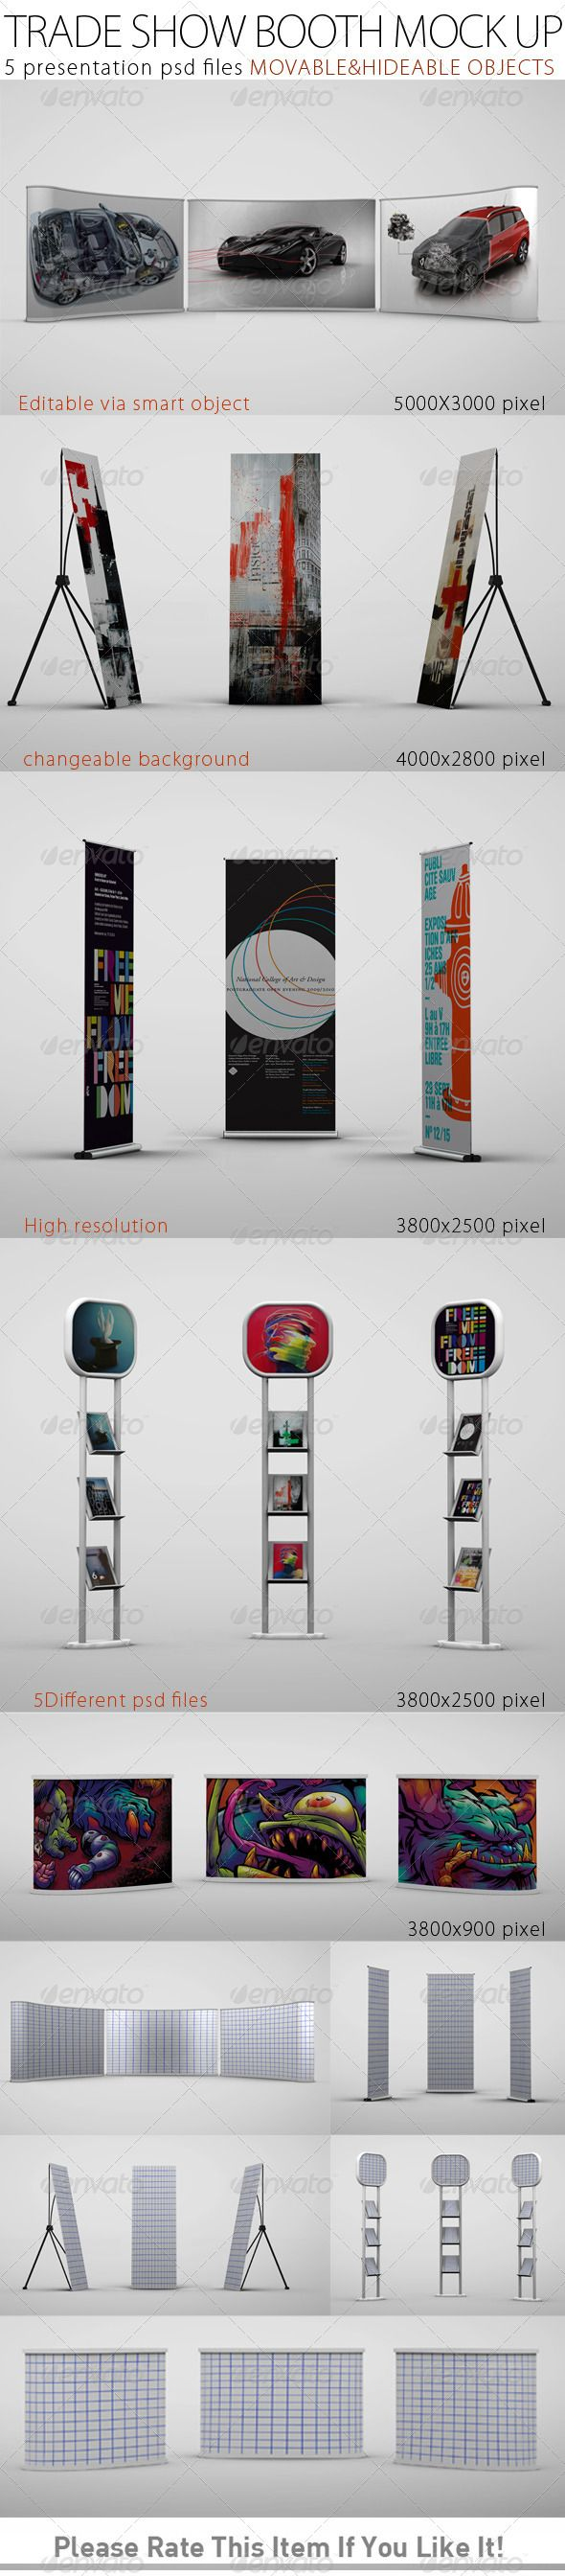 Exhibition Booth Mockup Psd : Trade show booth mock up graphicriver